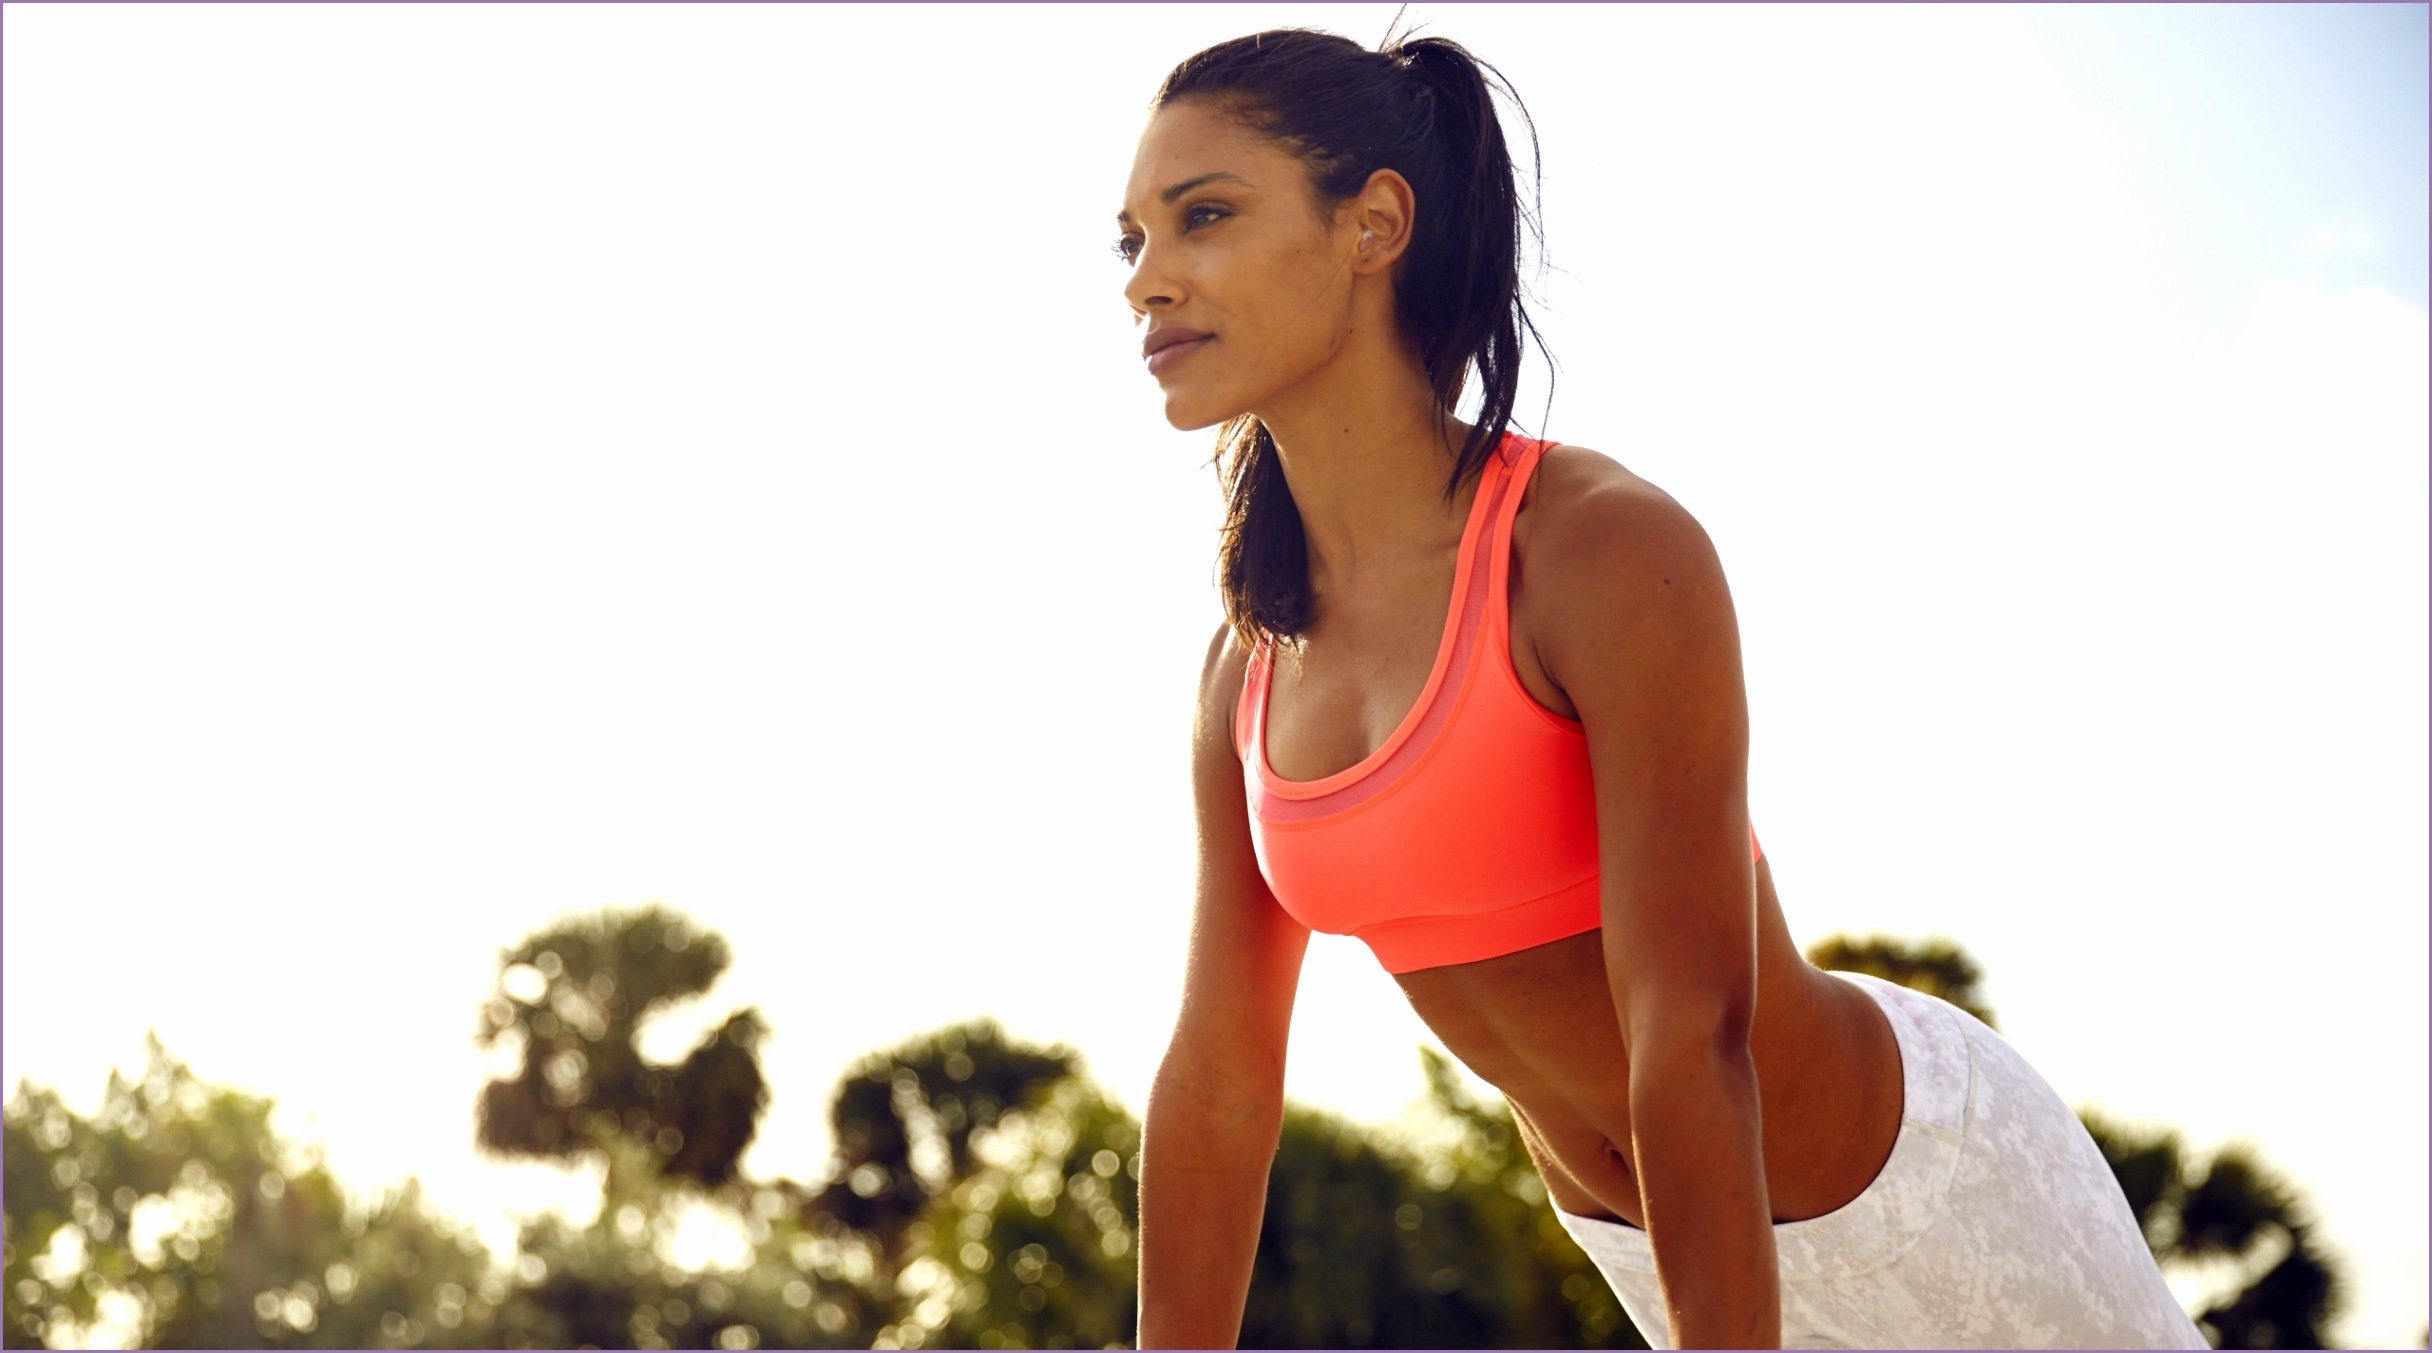 fitness workout girl 4k 3820